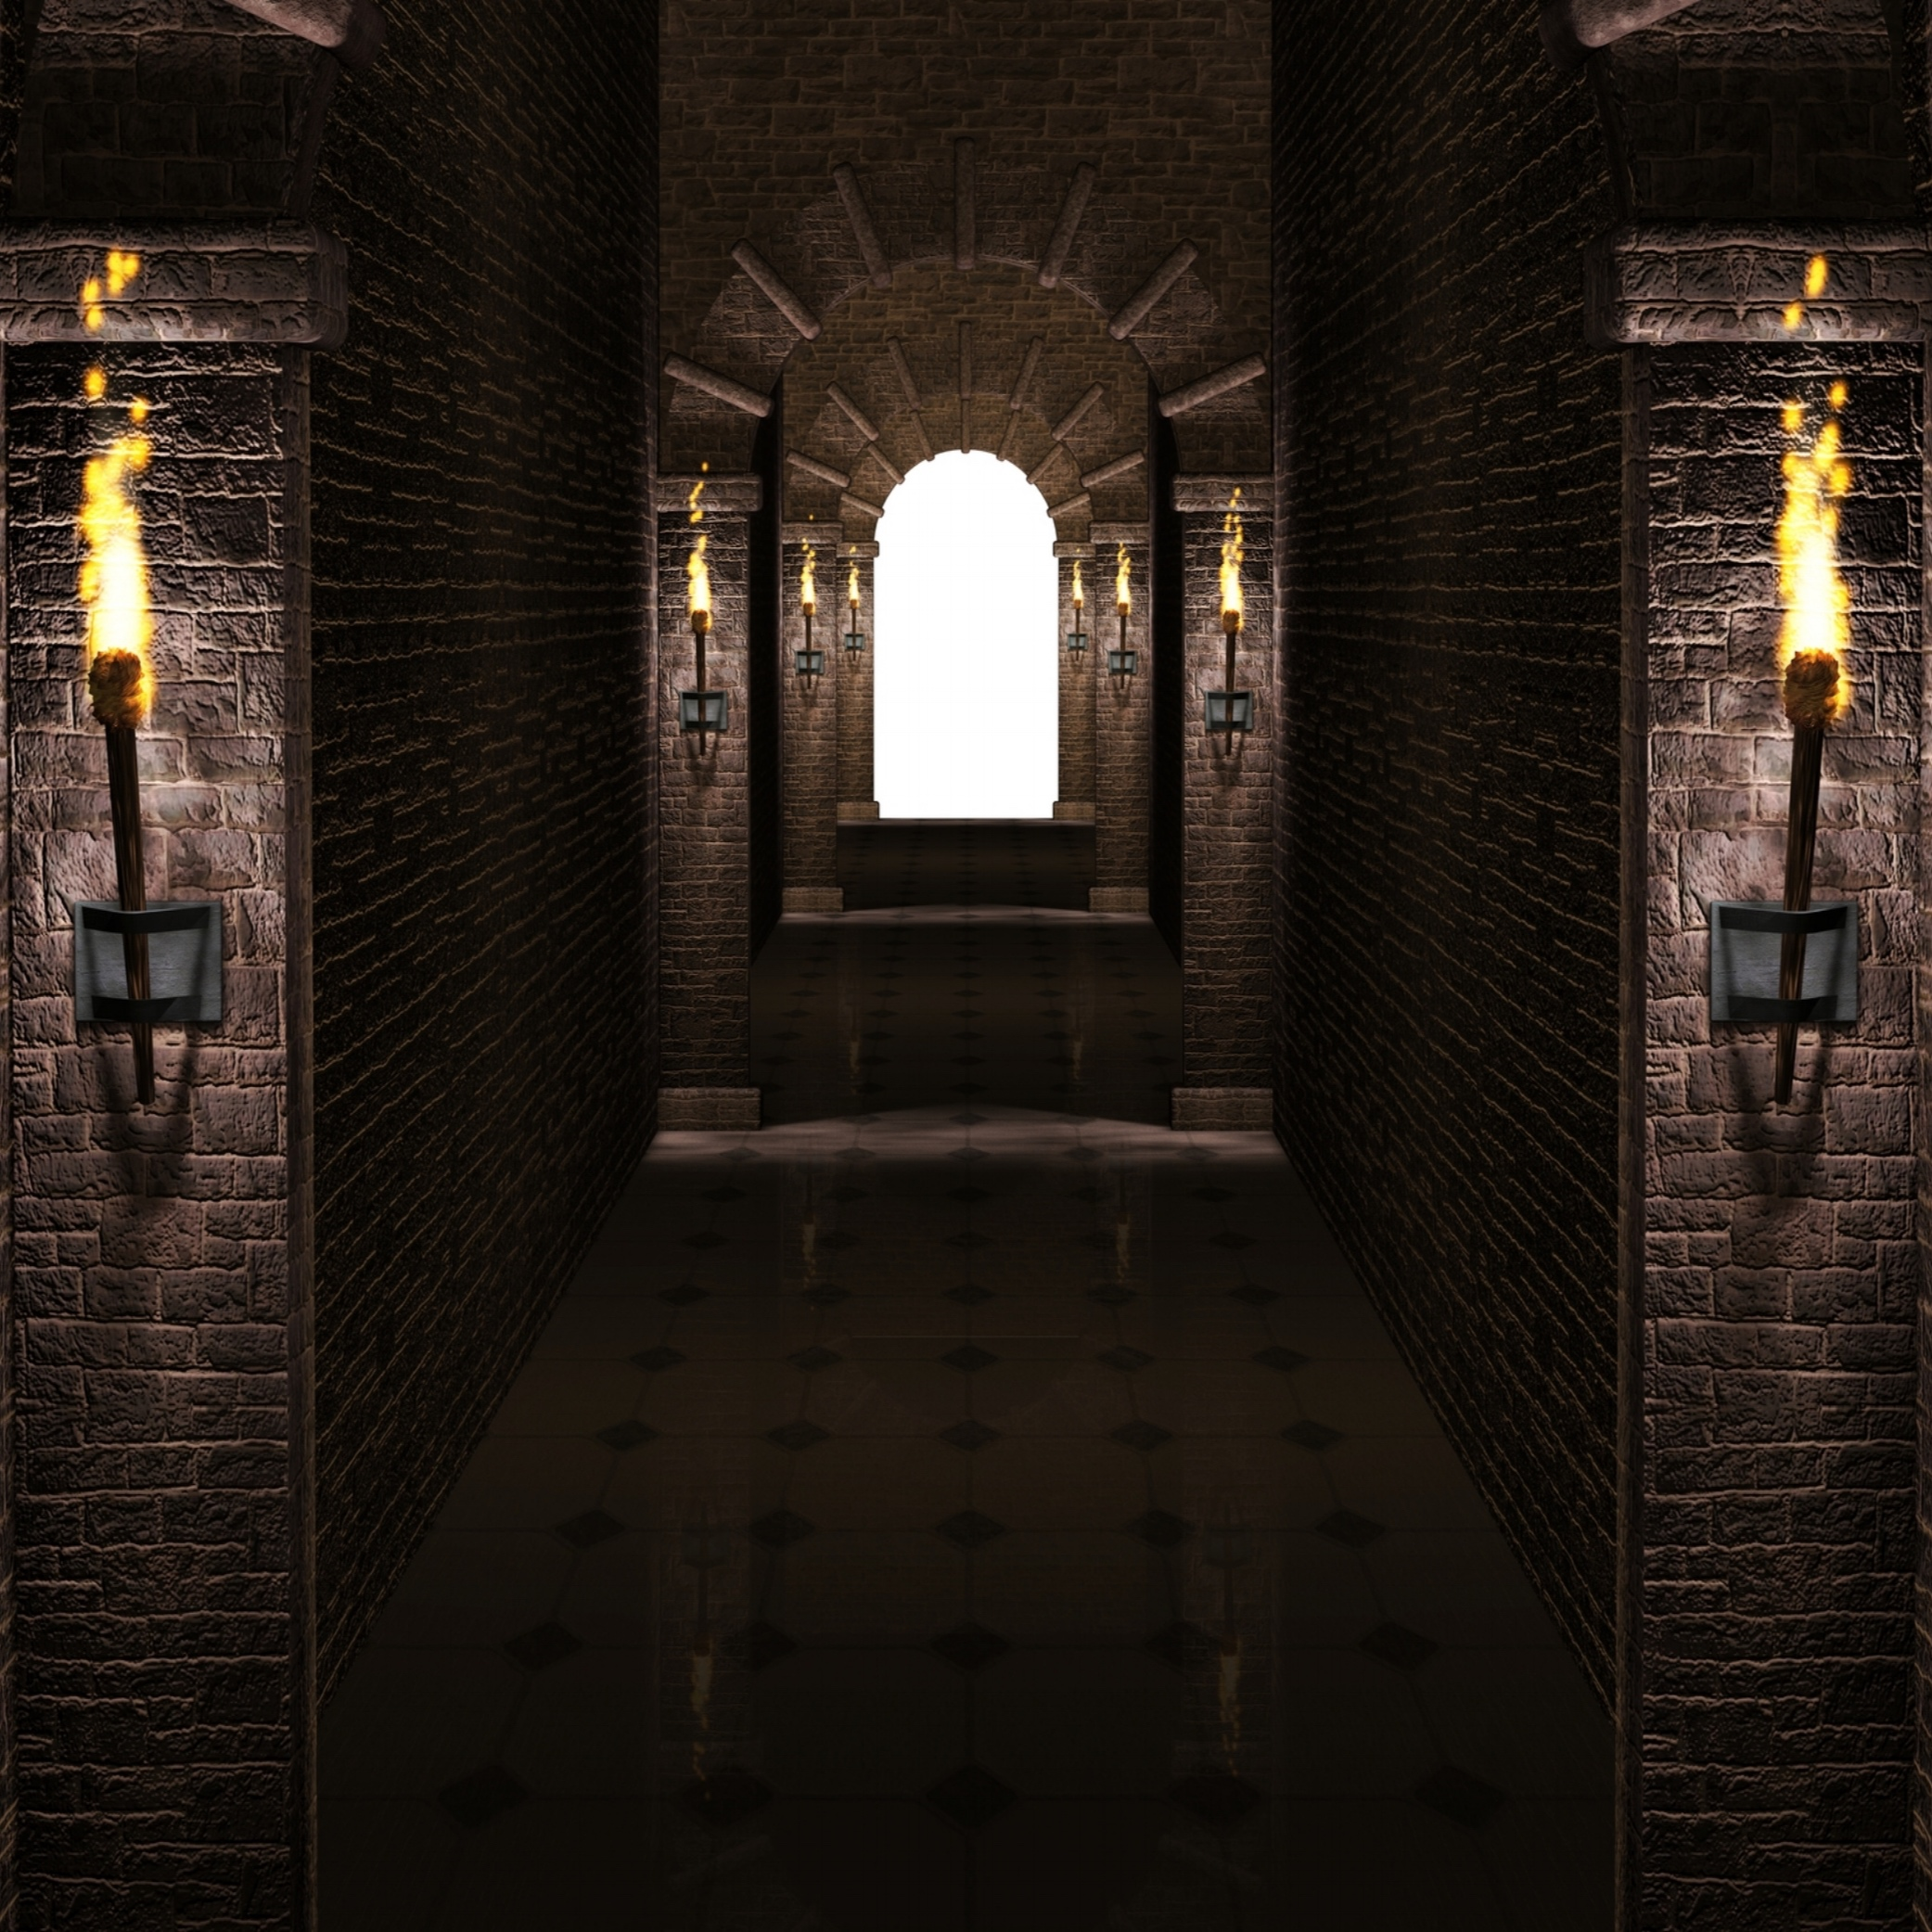 """QUEST FOR THE THRONE - Will you rise to your destiny and take the throne, in our medieval themed """"Quest for the Throne"""" room?Find the proof of your birthright and escape undetected before the castle guards return. You have 60 minutes... go!This puzzle room is recommended for ages 5+ w/adult (18yrs+)Level of difficulty 6/10"""